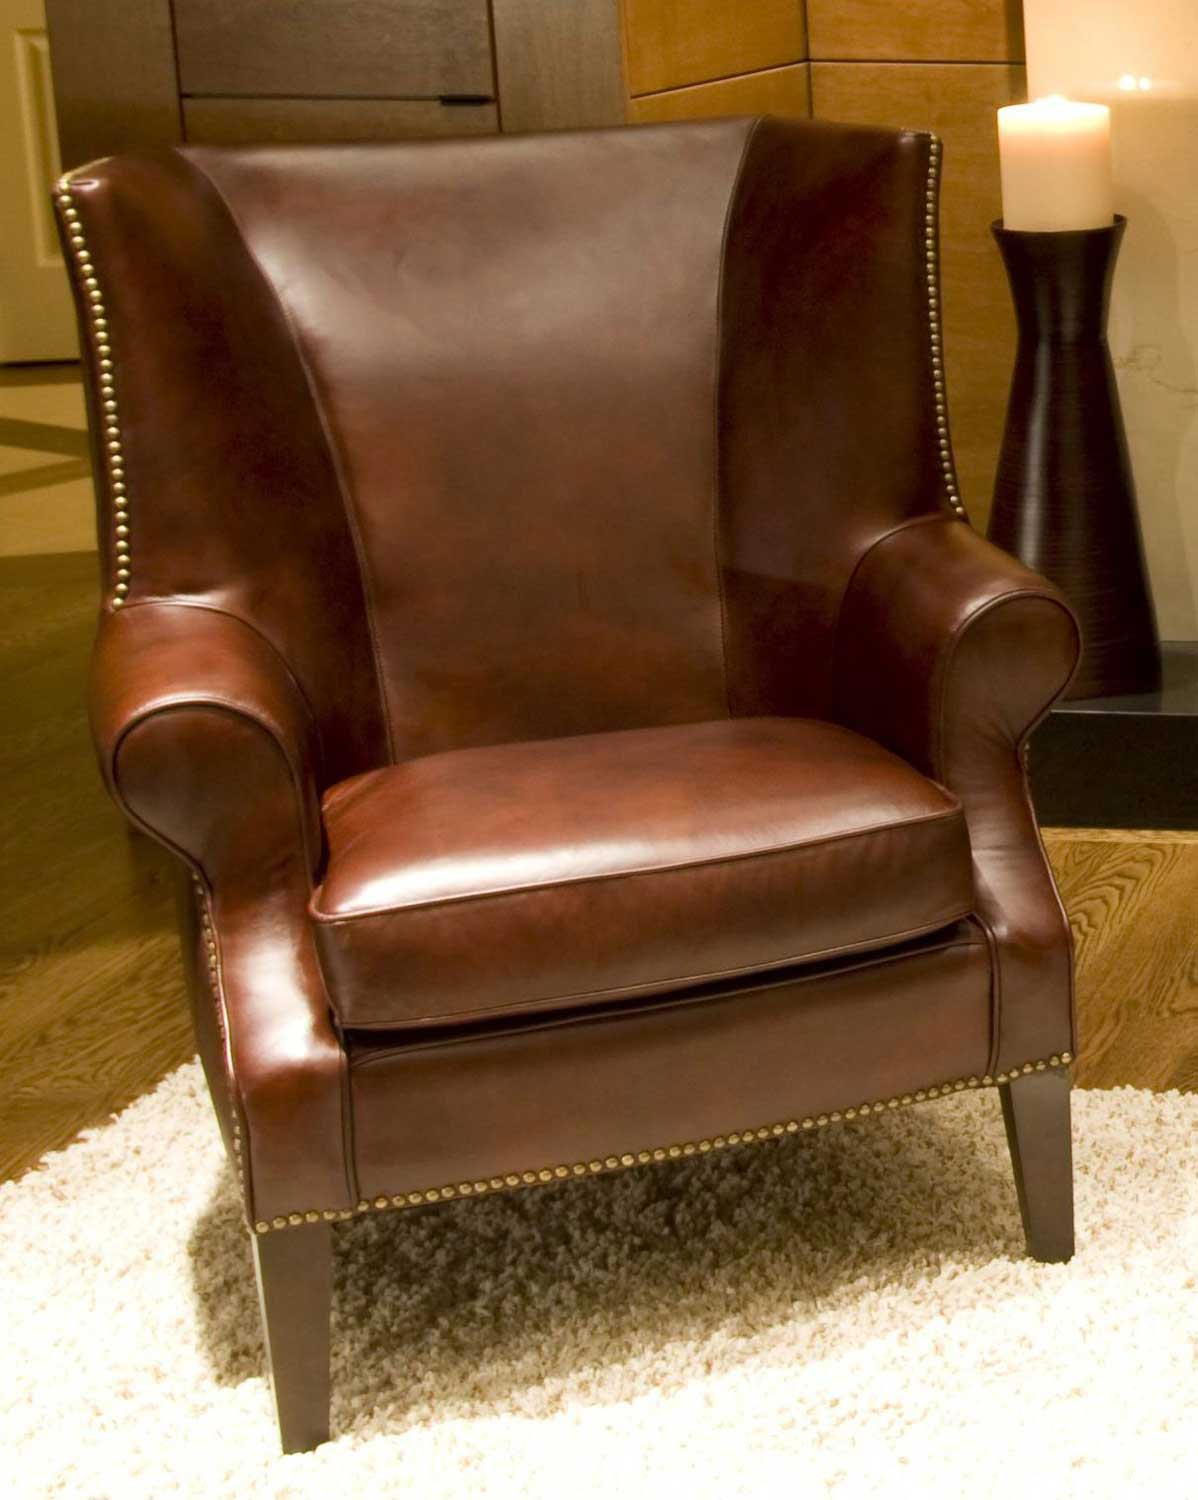 ELEMENTS Fine Home Furnishings Camden Top Grain Leather Accent Chair - Raisin